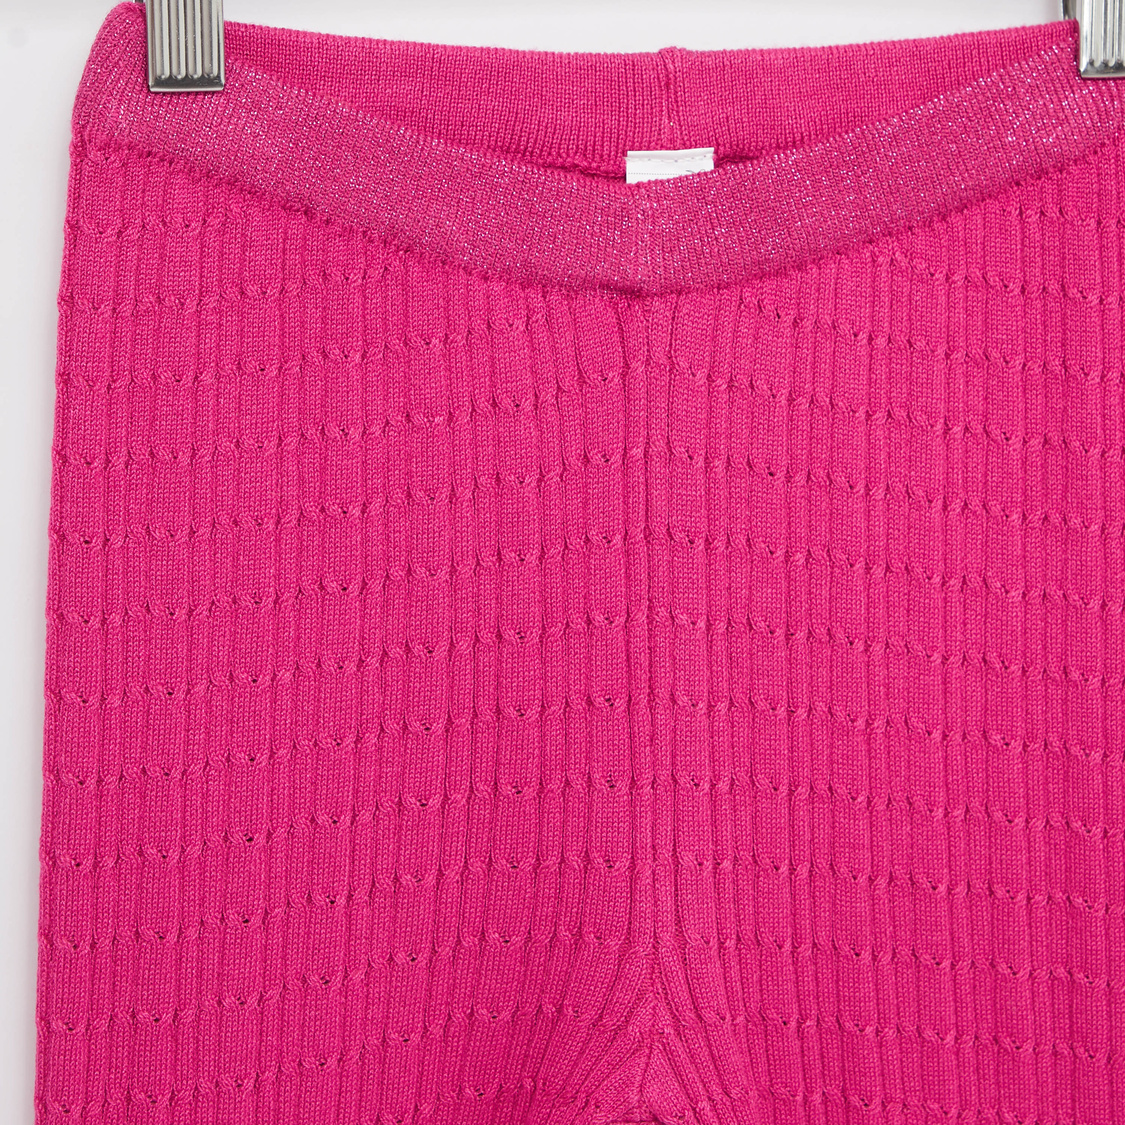 Full Length Cable Knit Leggings with Elasticated Waistband